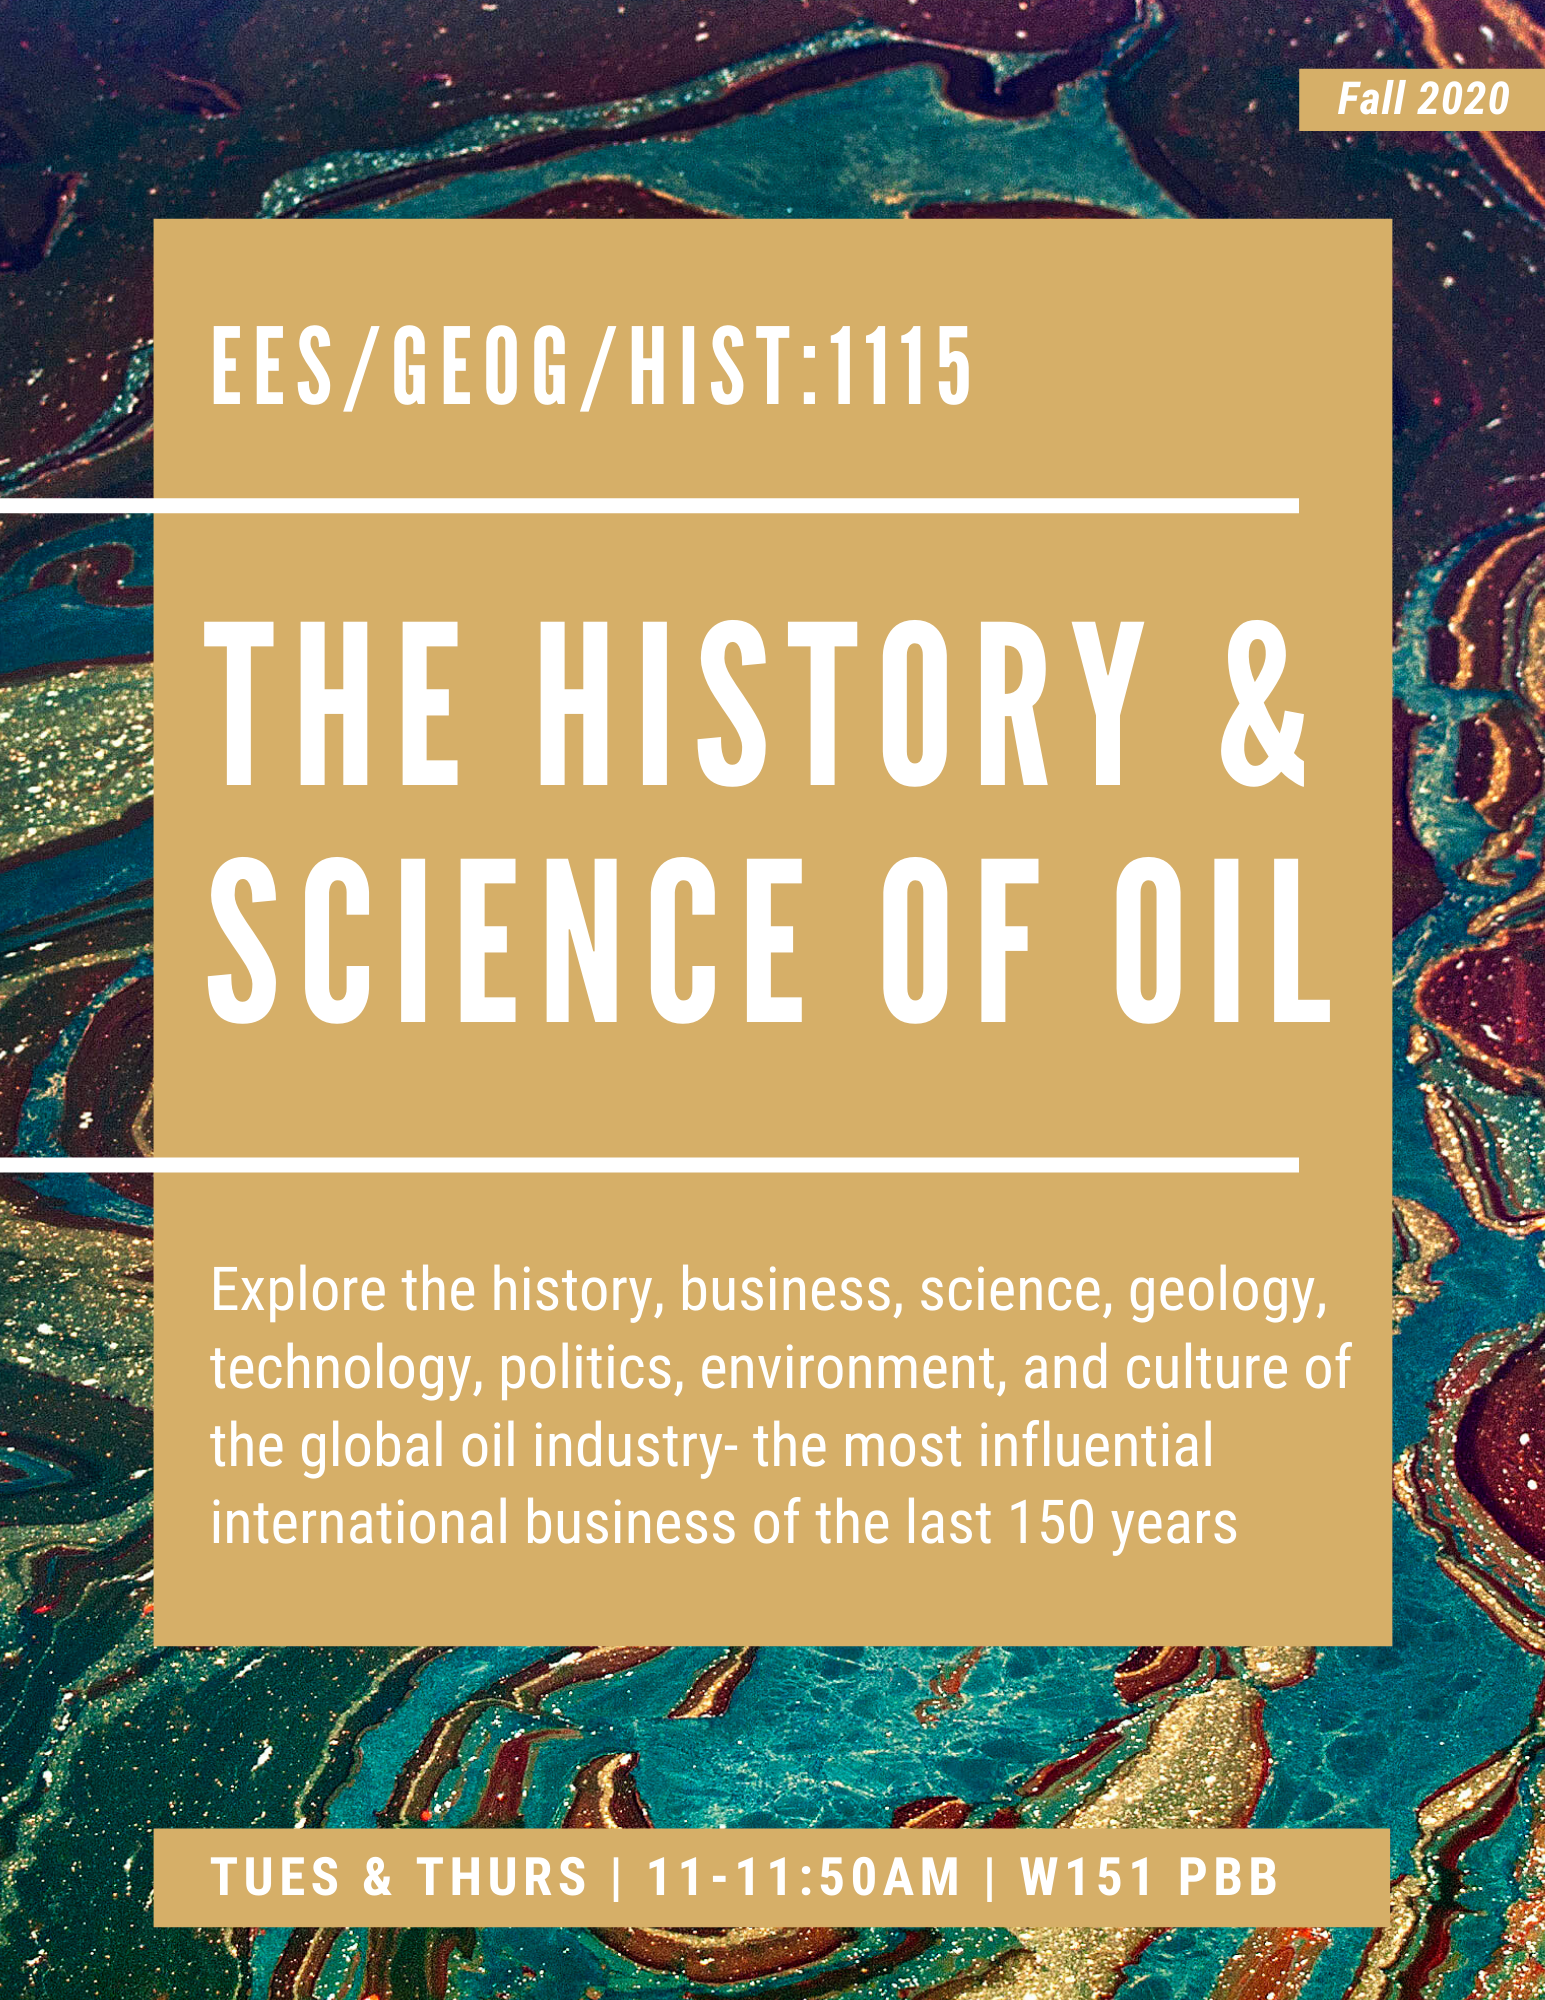 HISTORY & SCIENCE OF OIL